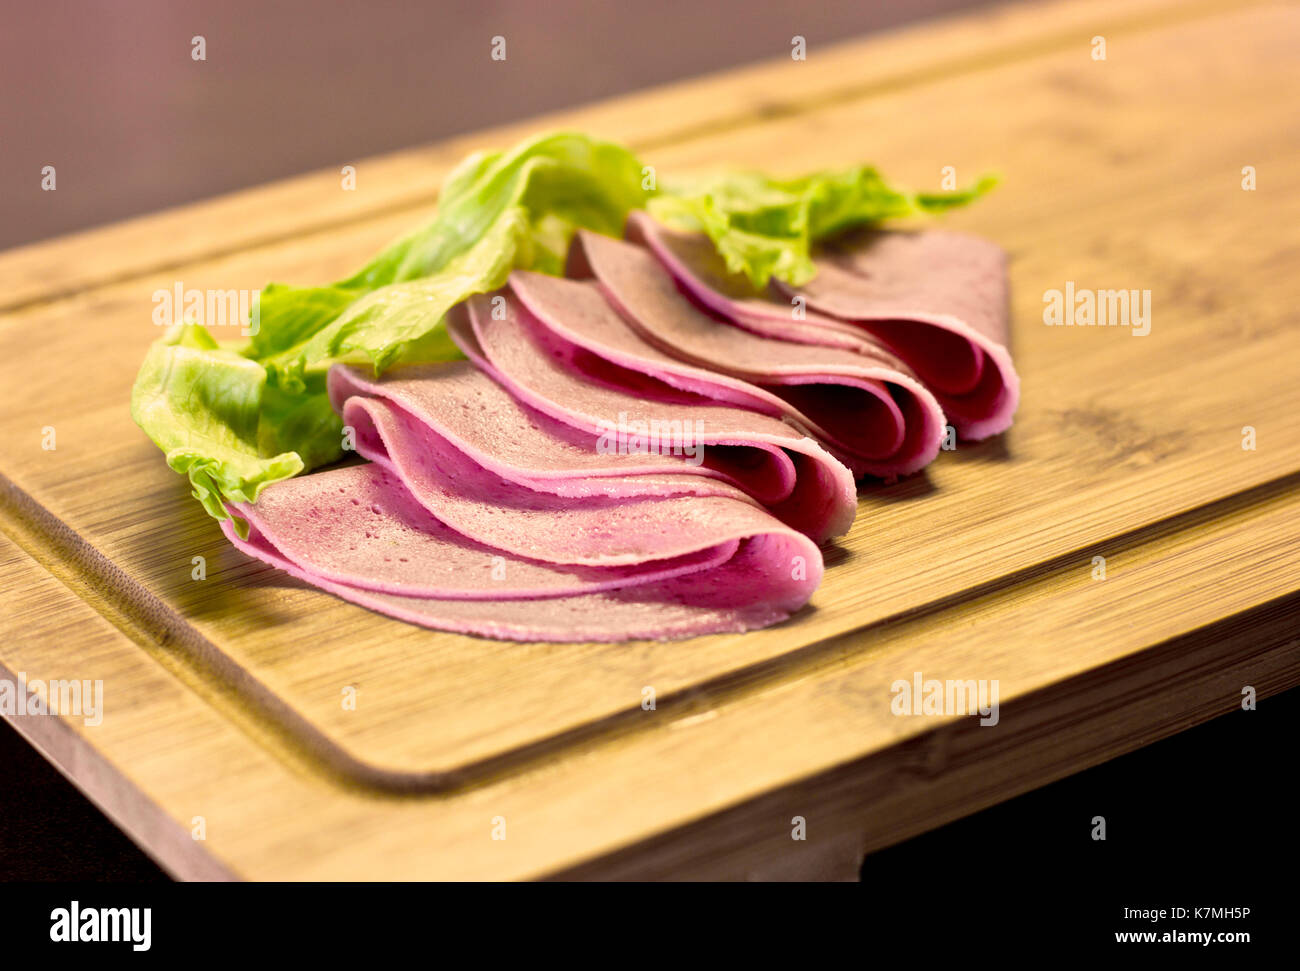 Thinly sliced sausage with green salad on wooden board - Stock Image